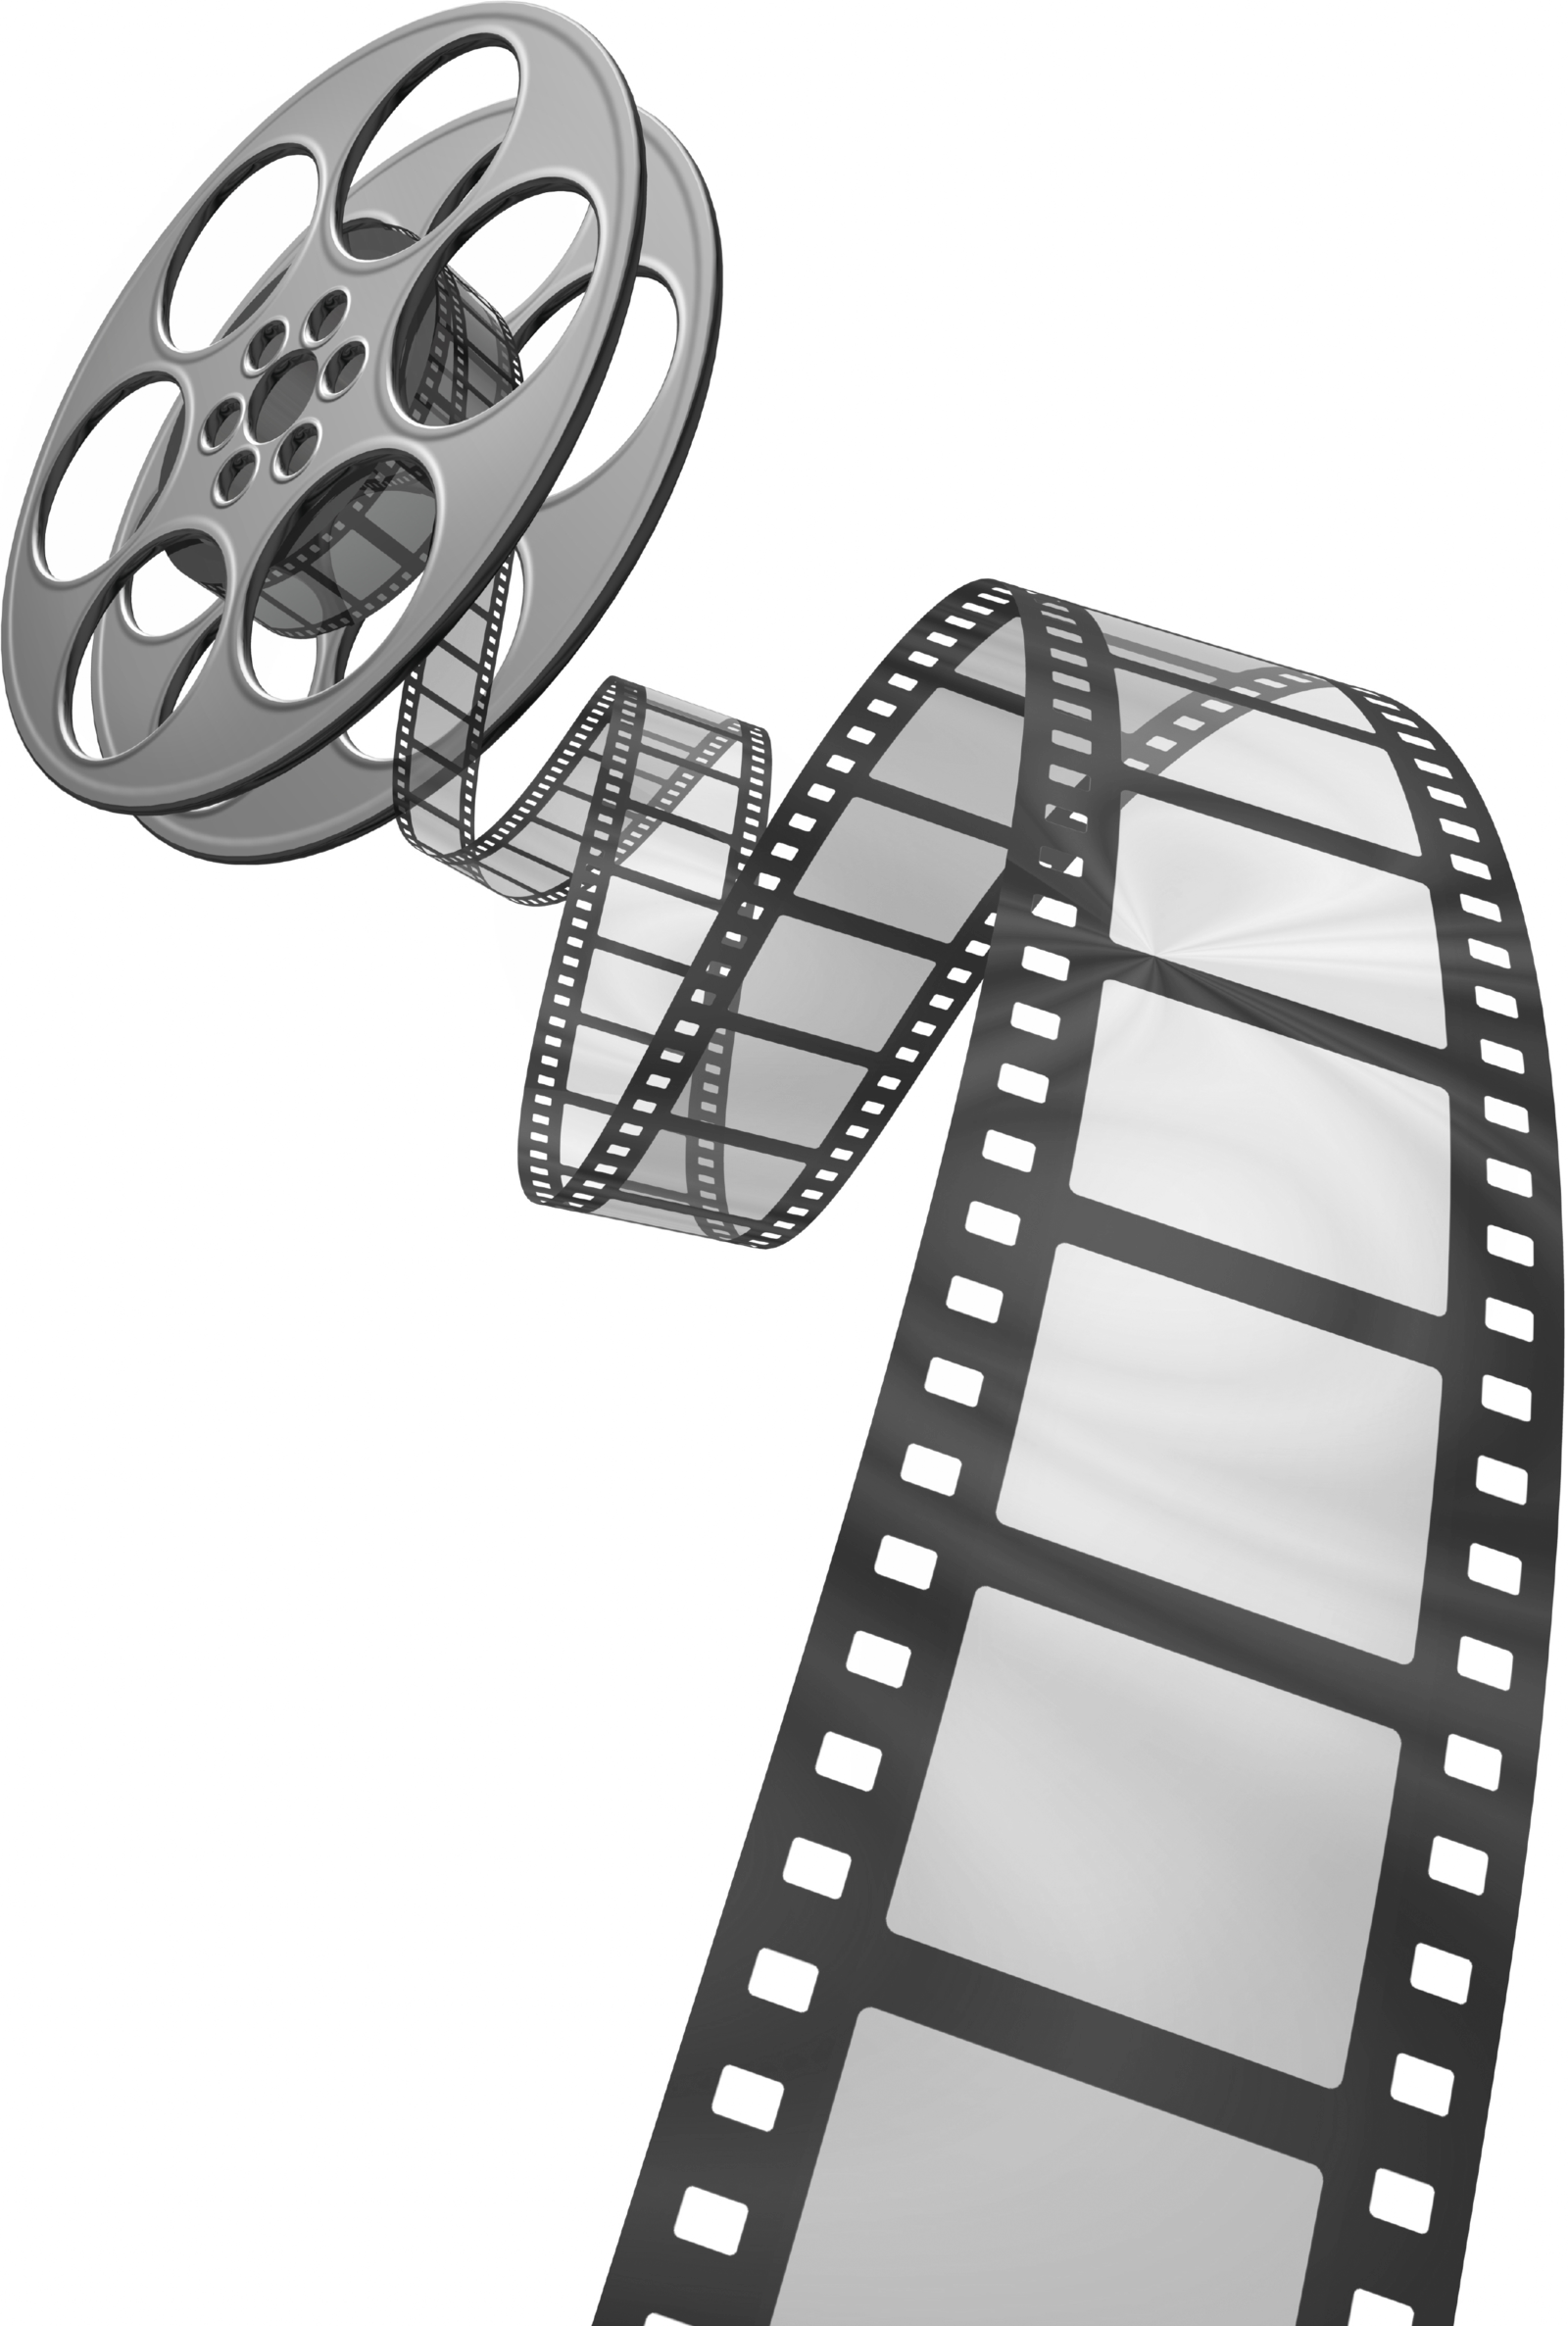 svg free download Movie reel film reel clip art image